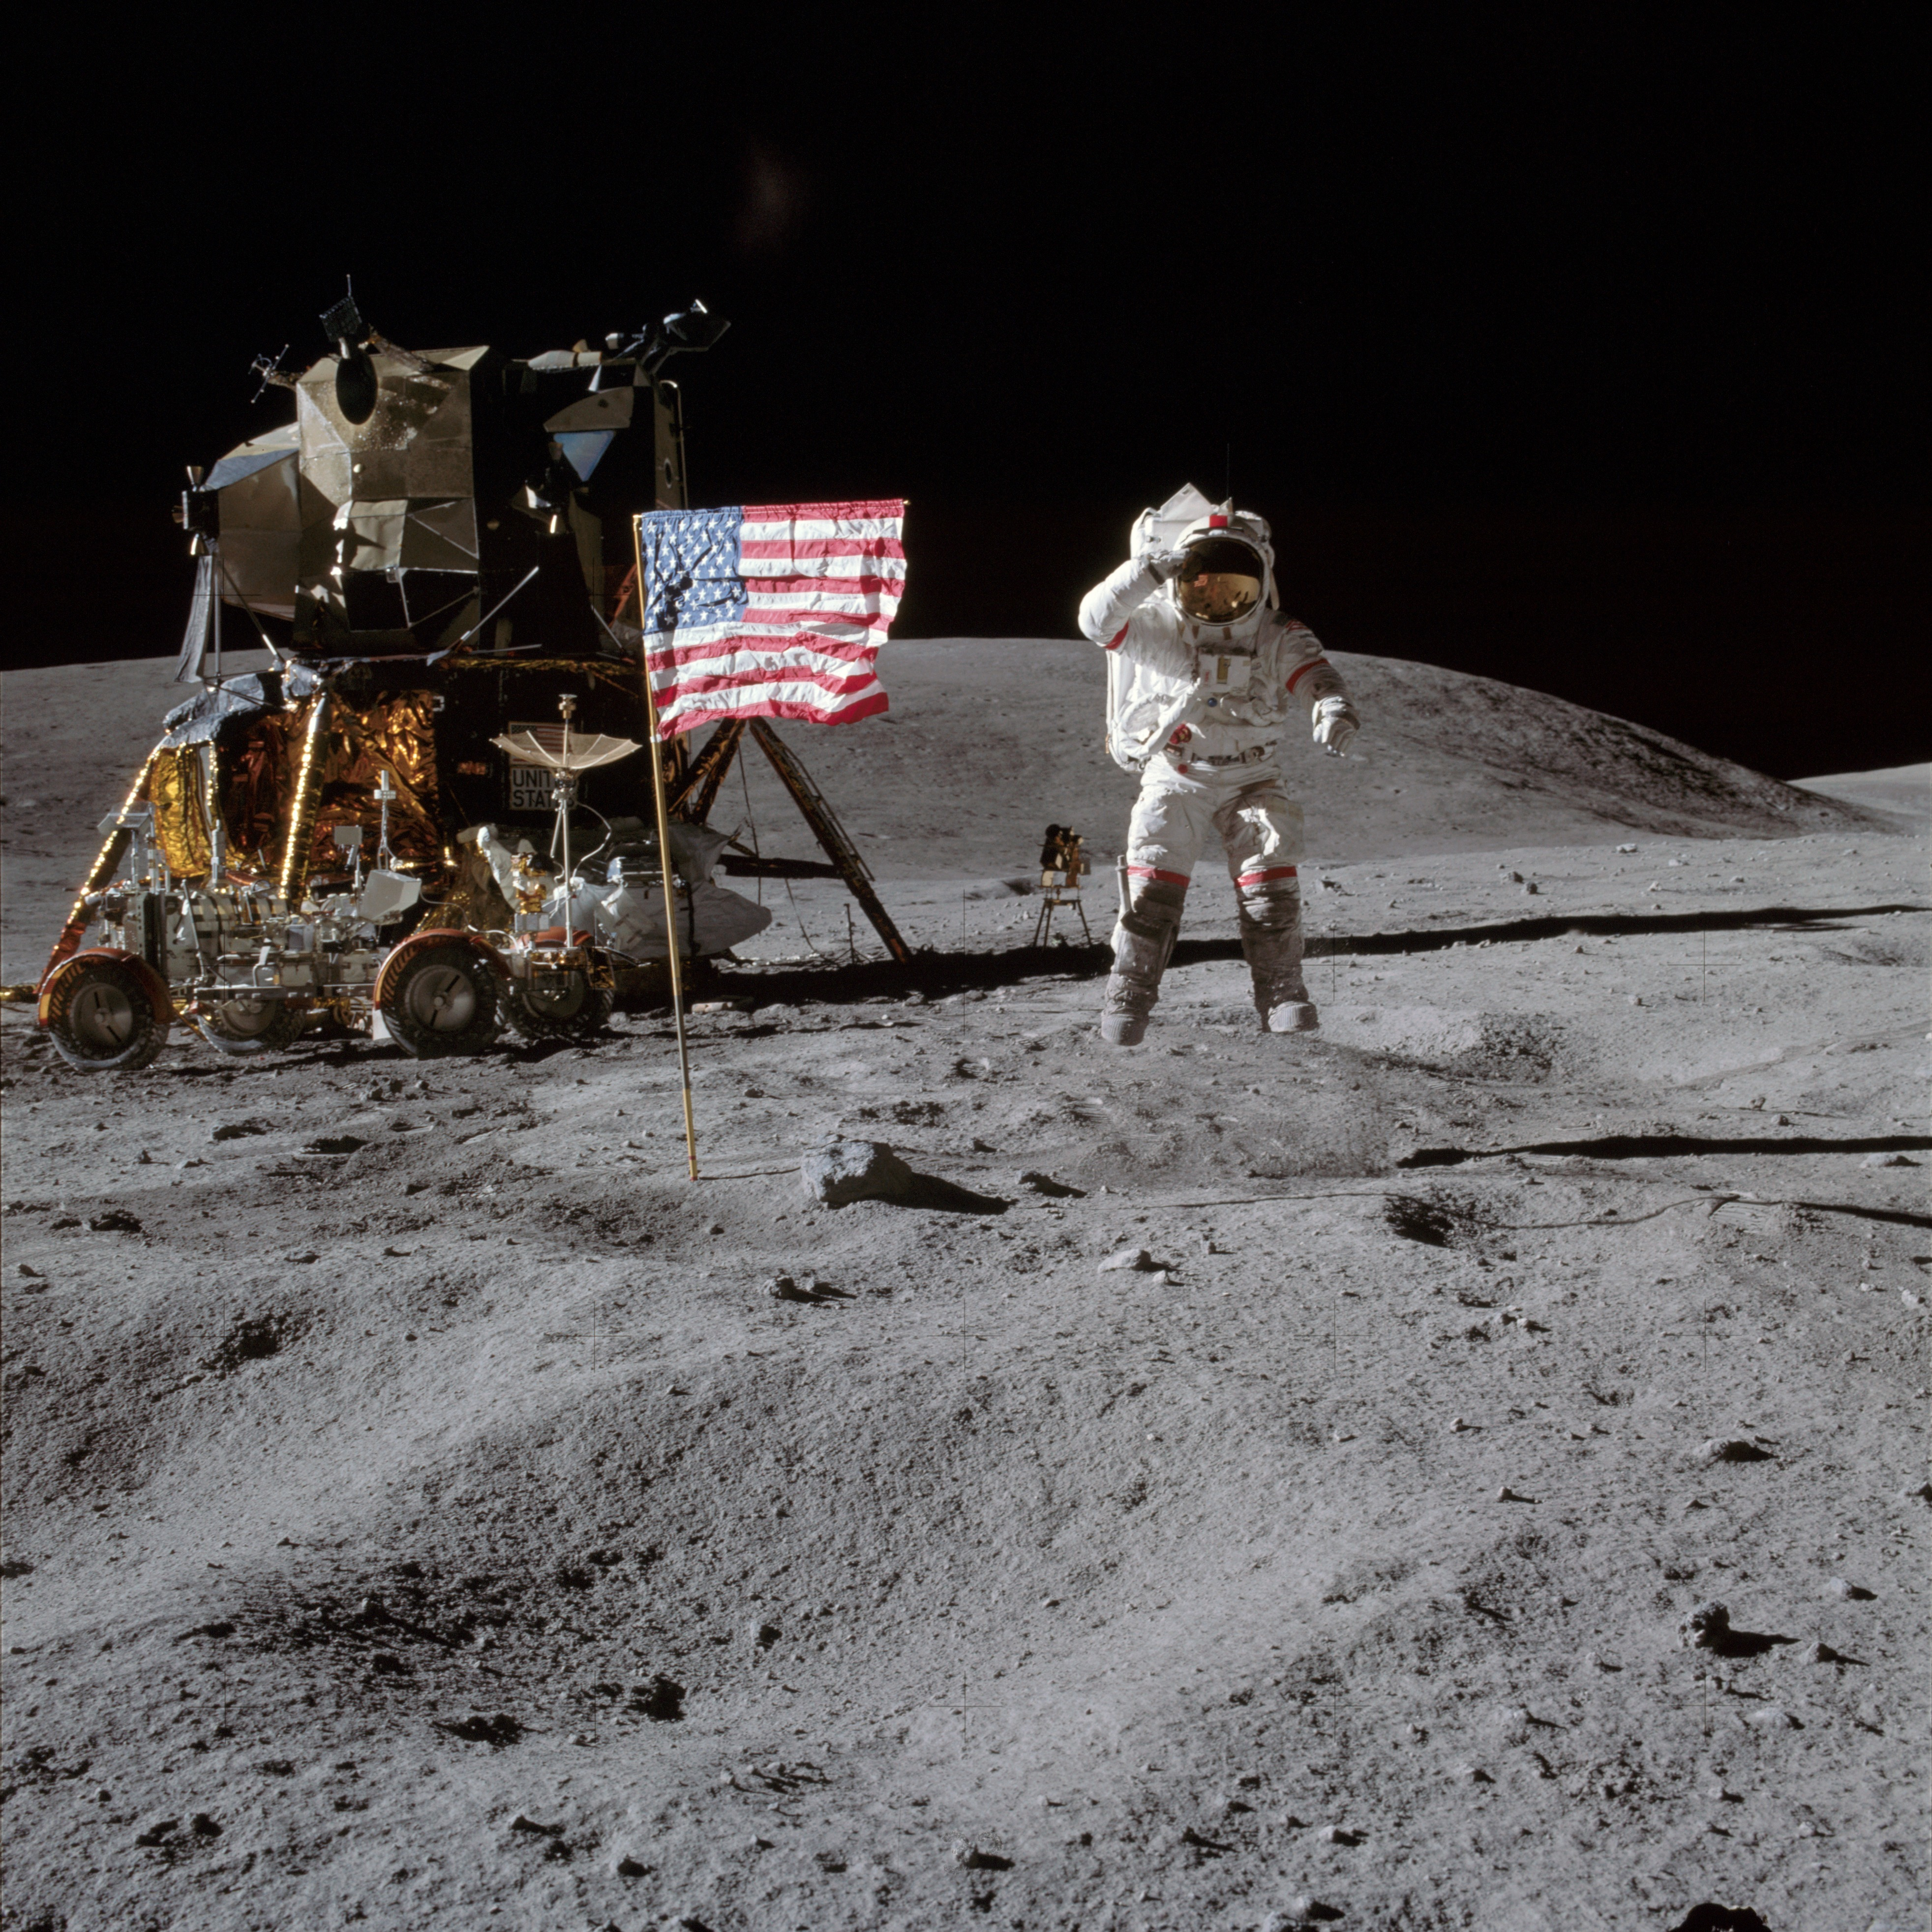 PICTURE SHOWS:  (21 April 1972) --- Astronaut John W. Young, commander of the Apollo 16 lunar landing mission, leaps from the lunar surface as he salutes the United States flag at the Descartes landing site during the first Apollo 16 extravehicular activity (EVA).  ...   Prepare to have your mind blown - NASA has collected together a treasure trove of more than 140,000 images, videos and audio files.  The stunning collection consolidates imagery spread across more than 60 collections into one searchable location, called the NASA Image and Video Library website.  Cover Images have chosen a gallery of the most popular images currently on the website, which include the first American astronaut to walk in space and a self-portrait of NASA's Curiosity Mars rover.  The portal allows users to search and discover content from across the agency's many missions in aeronautics, astrophysics, Earth science, human spaceflight, and more.  The library is not comprehensive, but rather provides the best of what NASA makes available from a single point of presence on the web. Additionally, it is a living website, where new and archival images, video and audio files continually will be added.  When: 19 Apr 2017